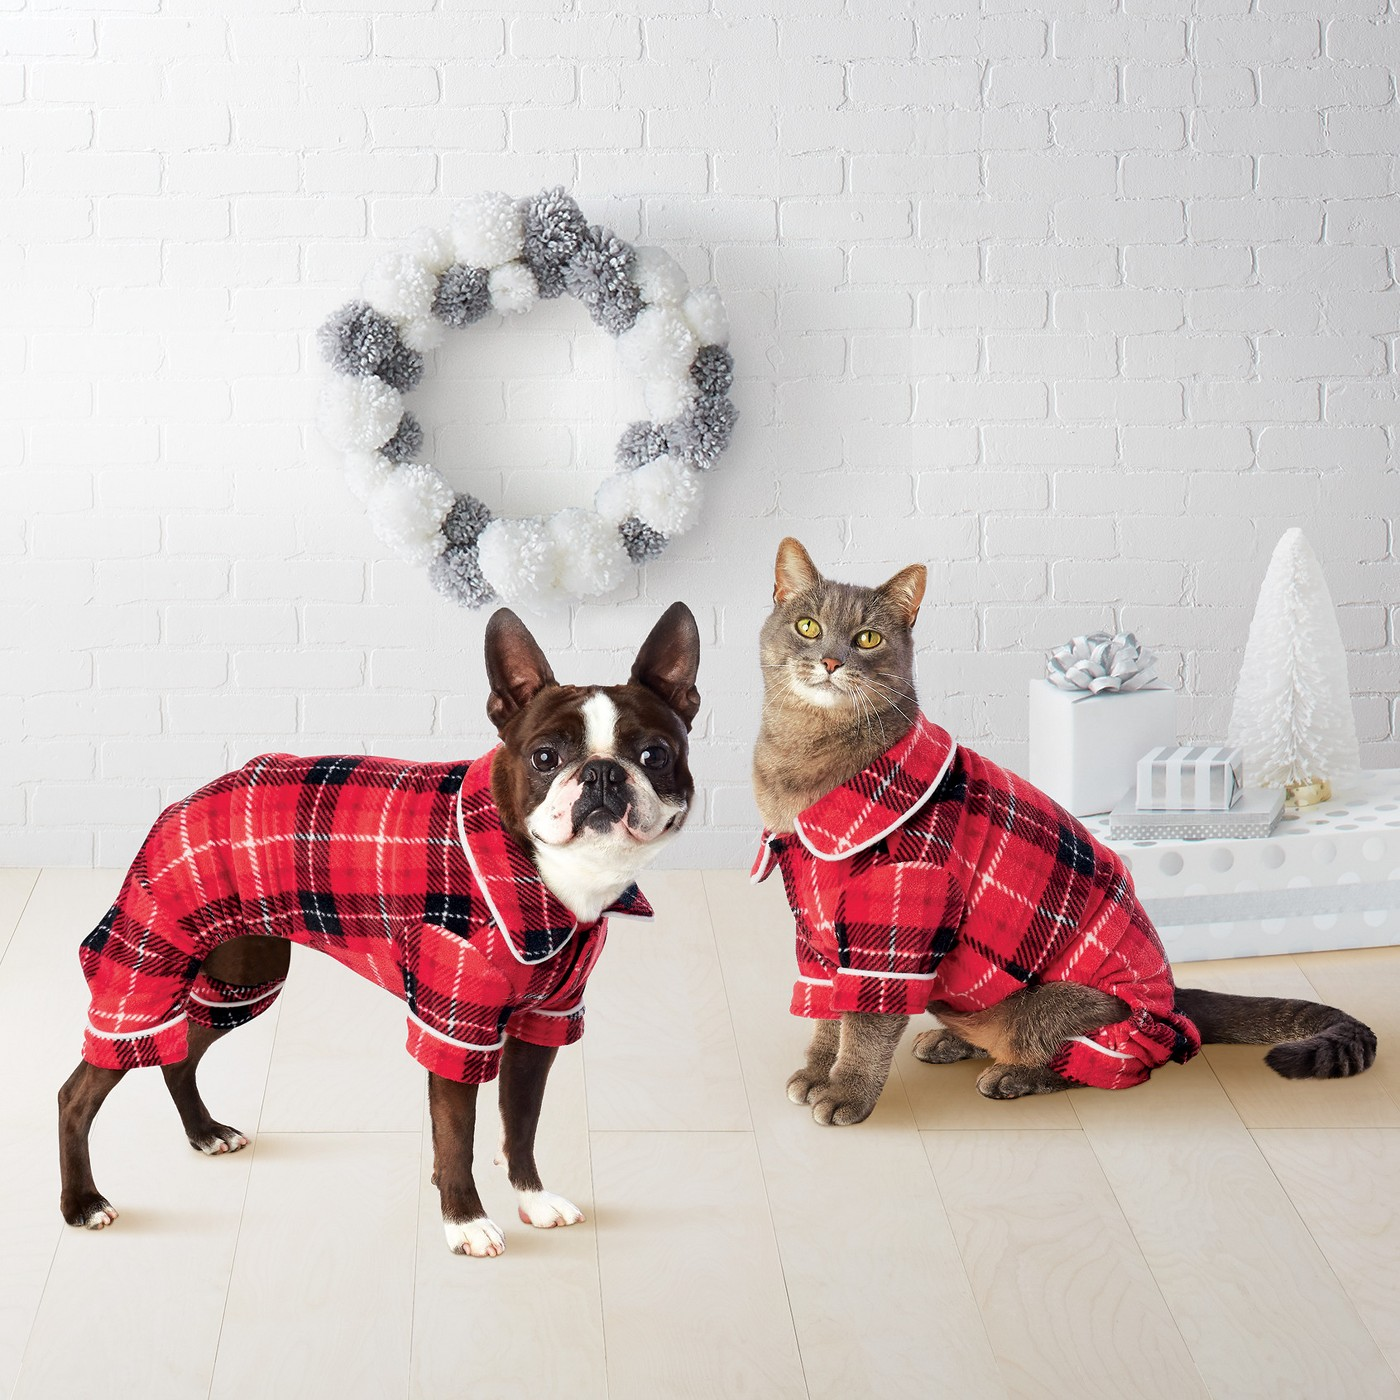 Family Christmas pajamas - love the pet pajamas kellyelko.com #christmaspajamas #christmas #christmastraditions